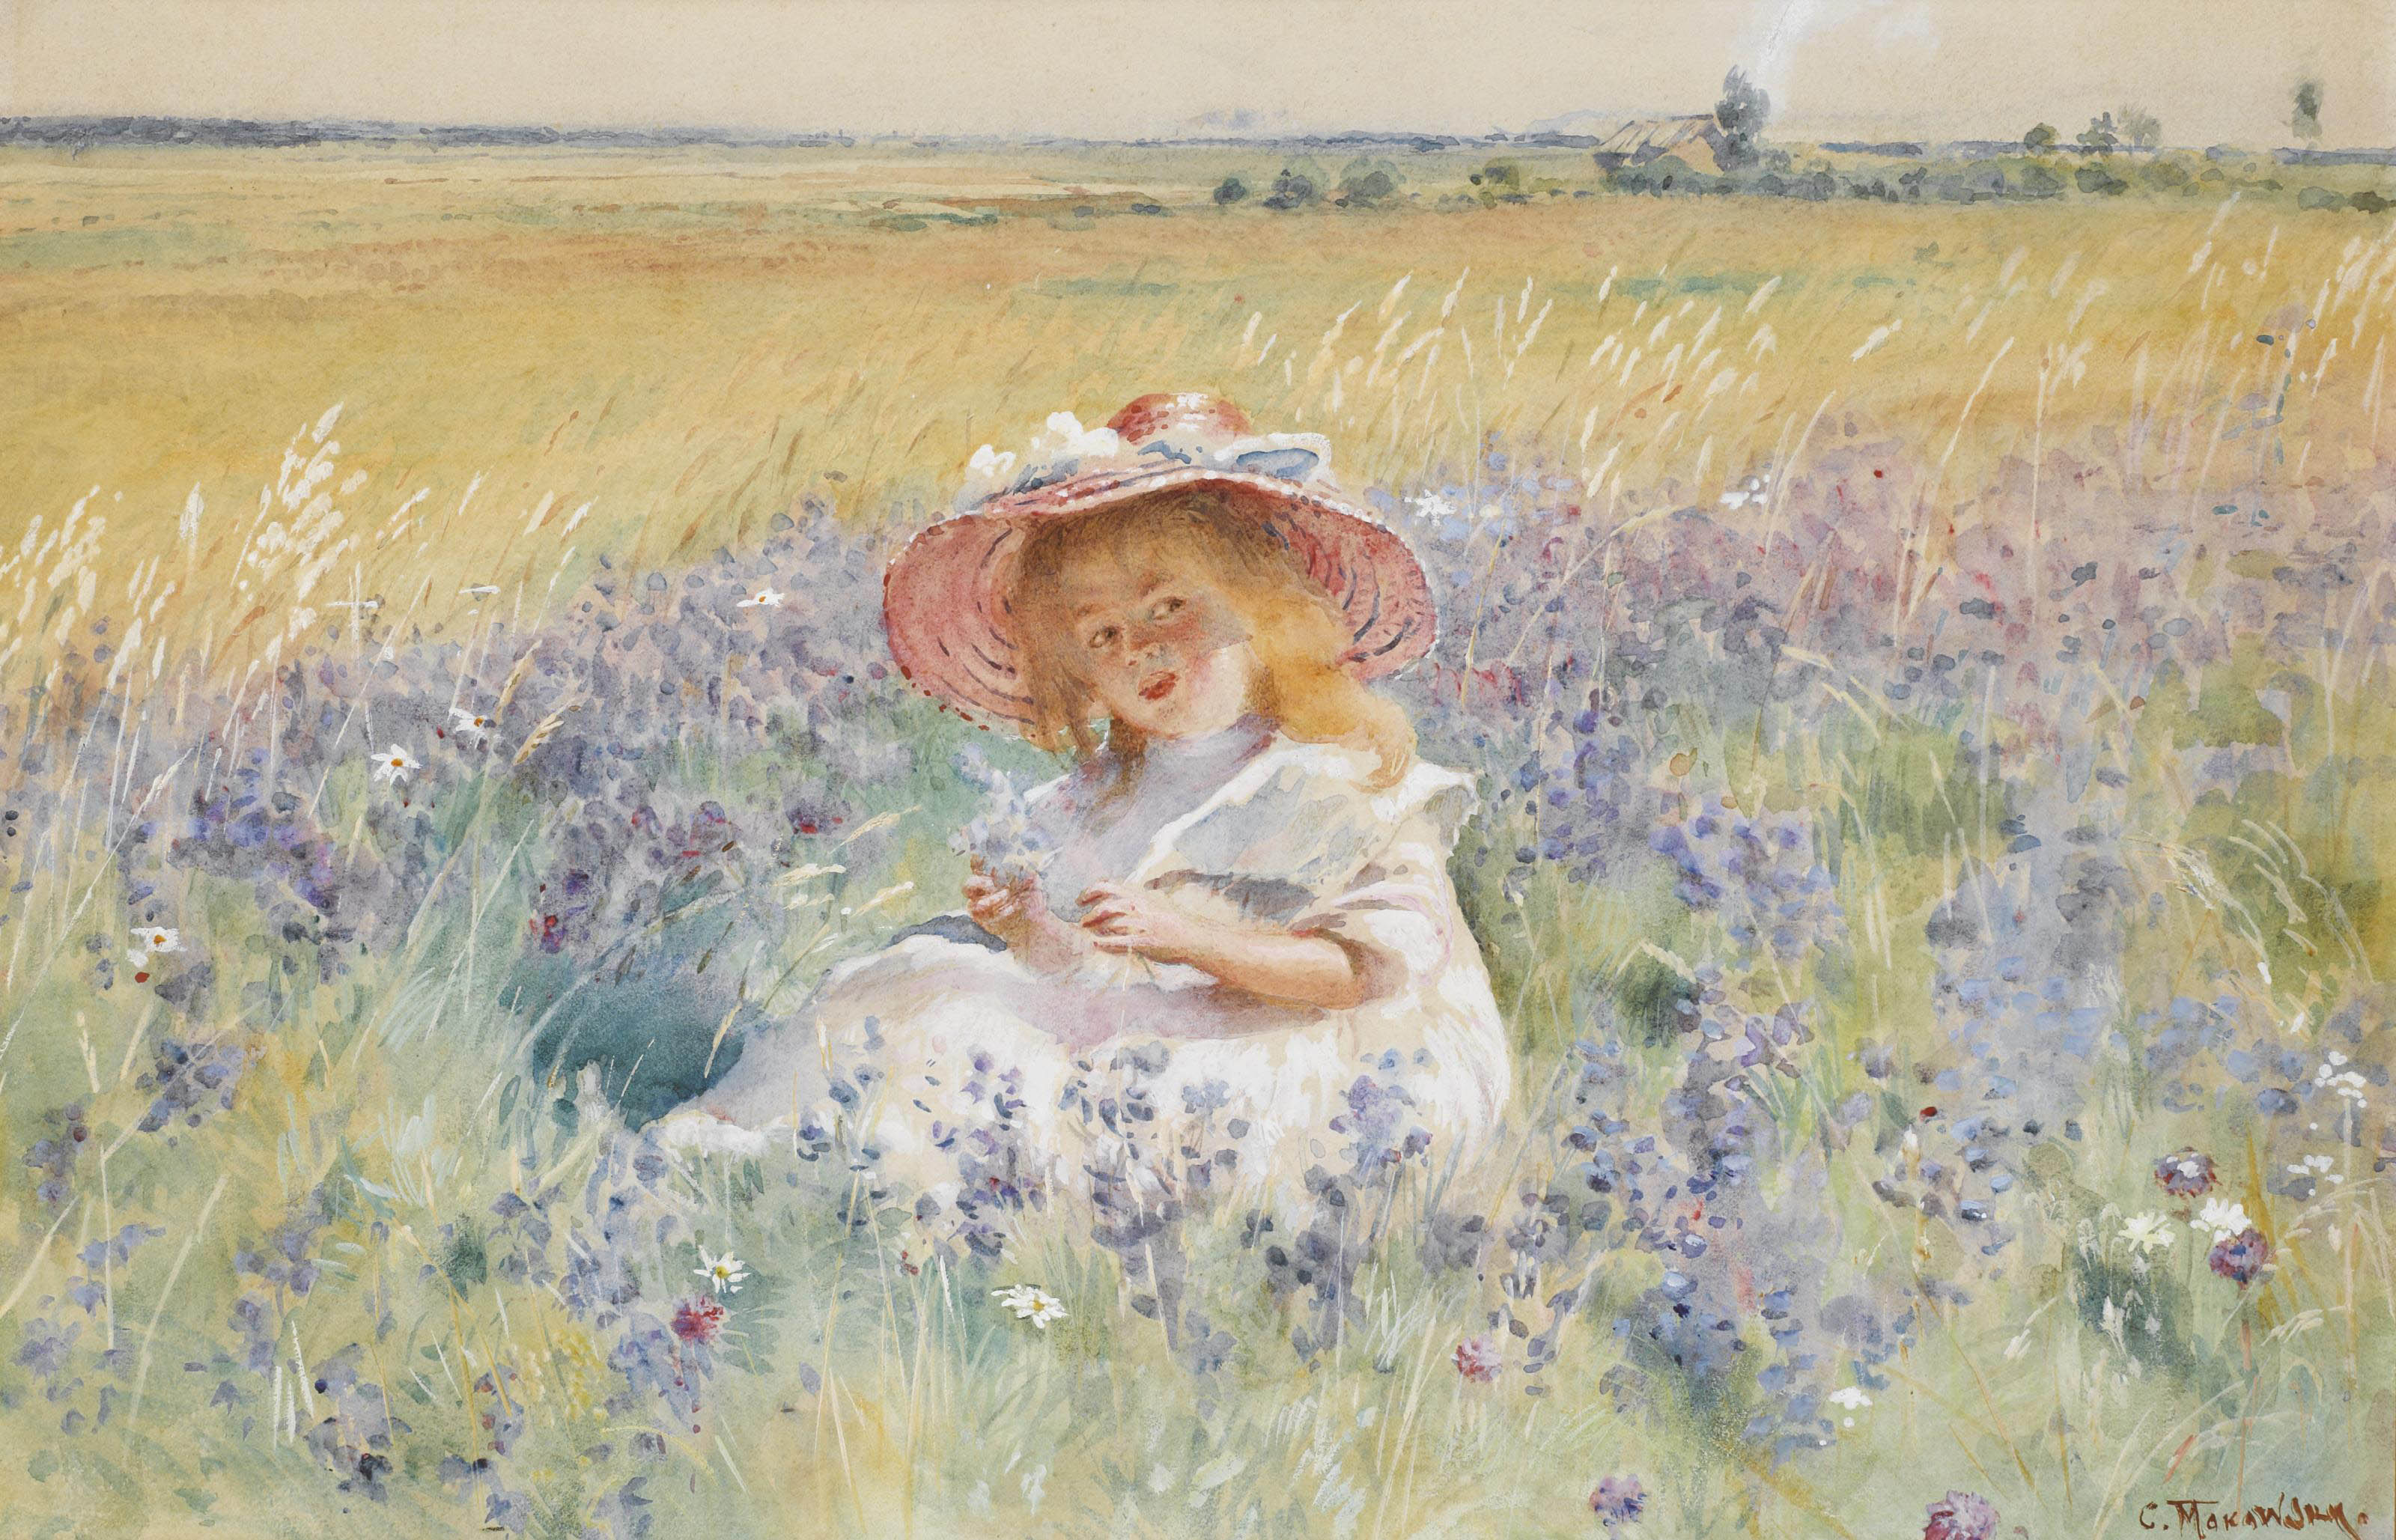 A young girl in a field of salvia, oxeye daisies and meadow foxtail